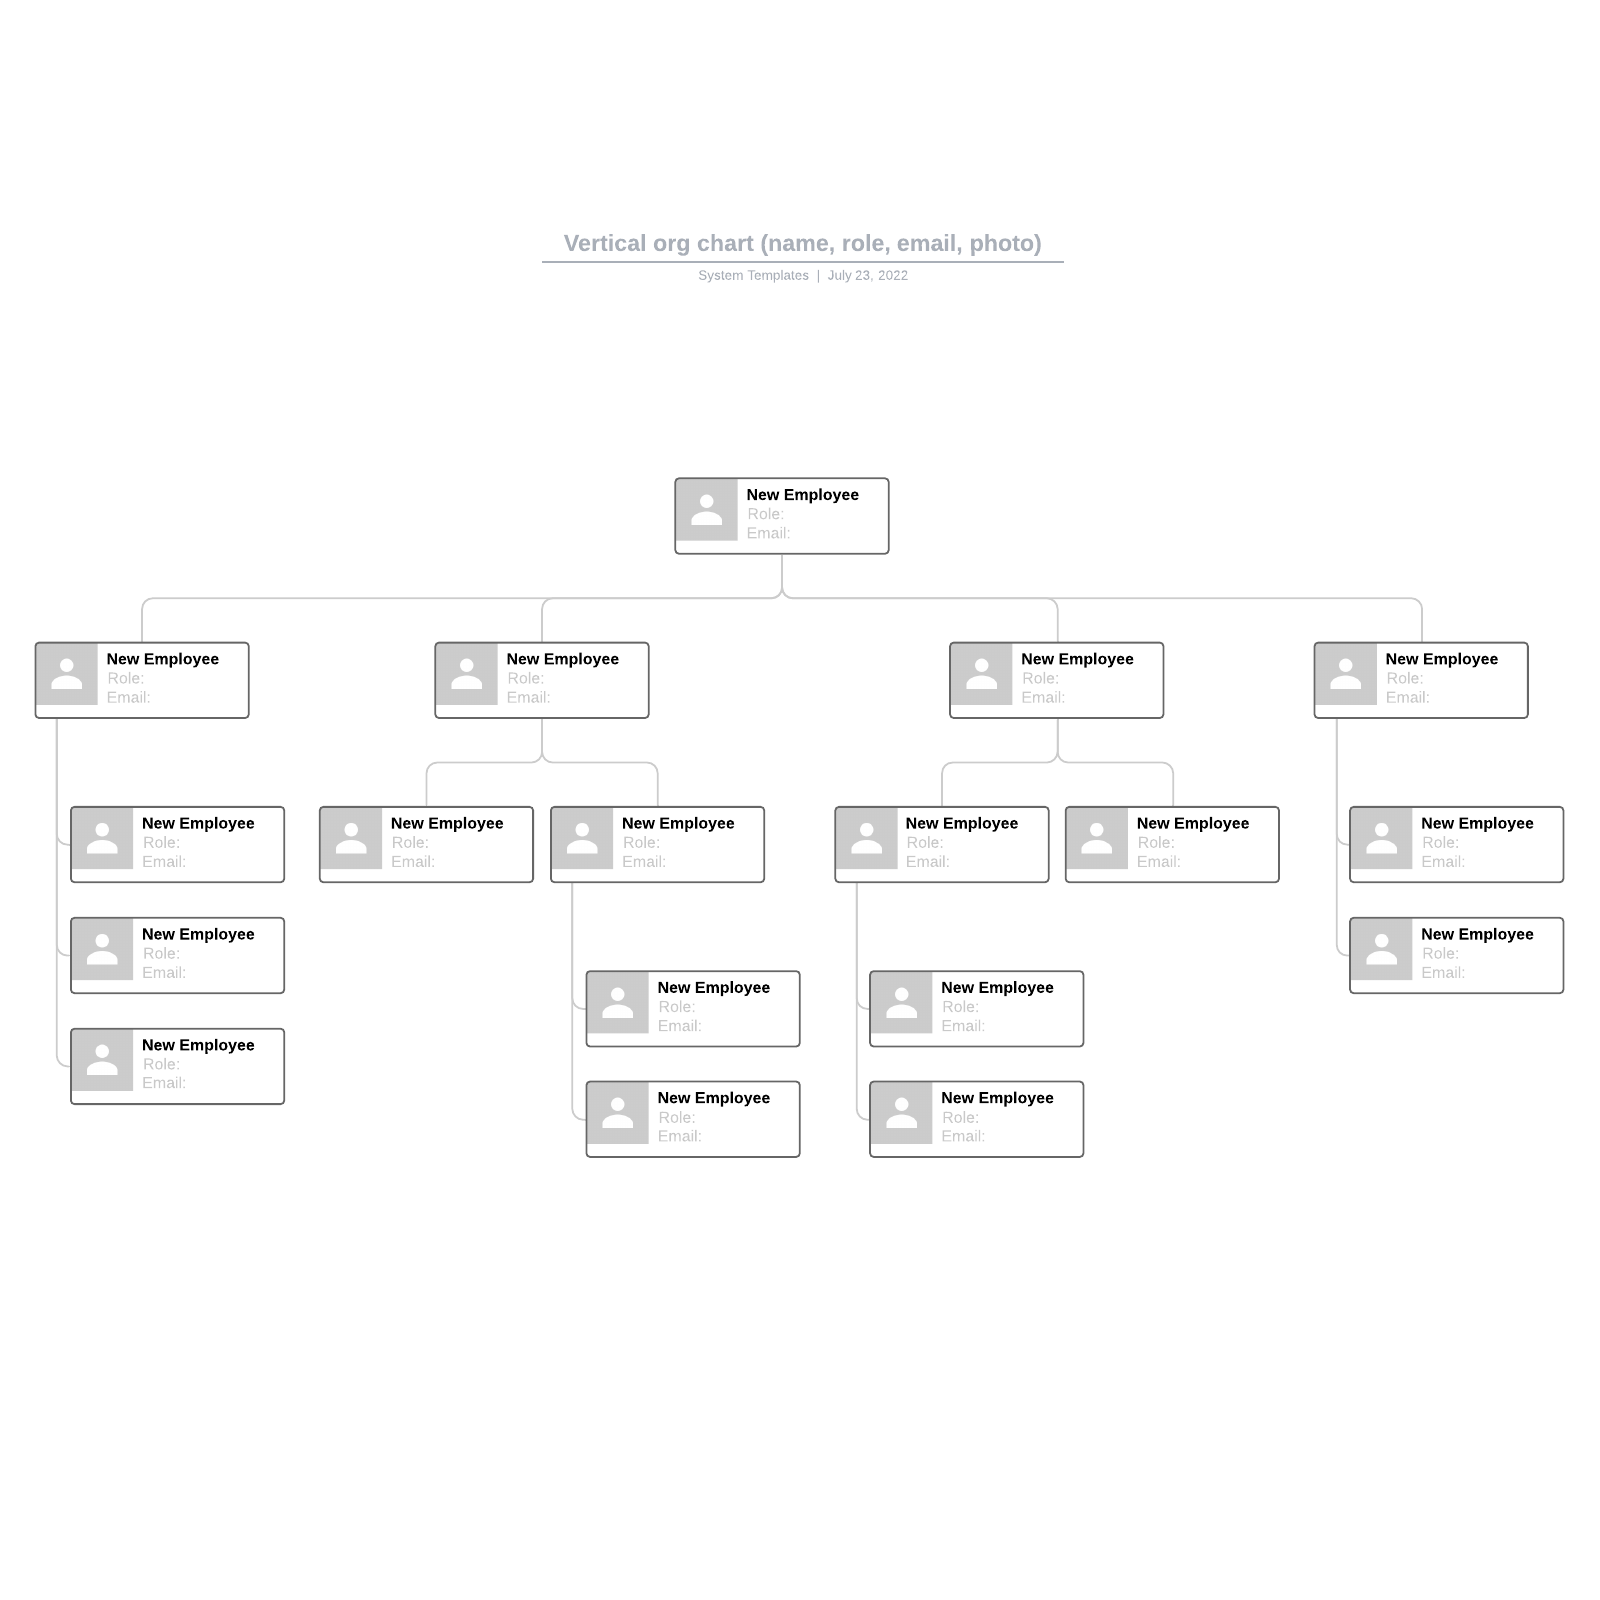 Vertical org chart (name, role, email, photo)